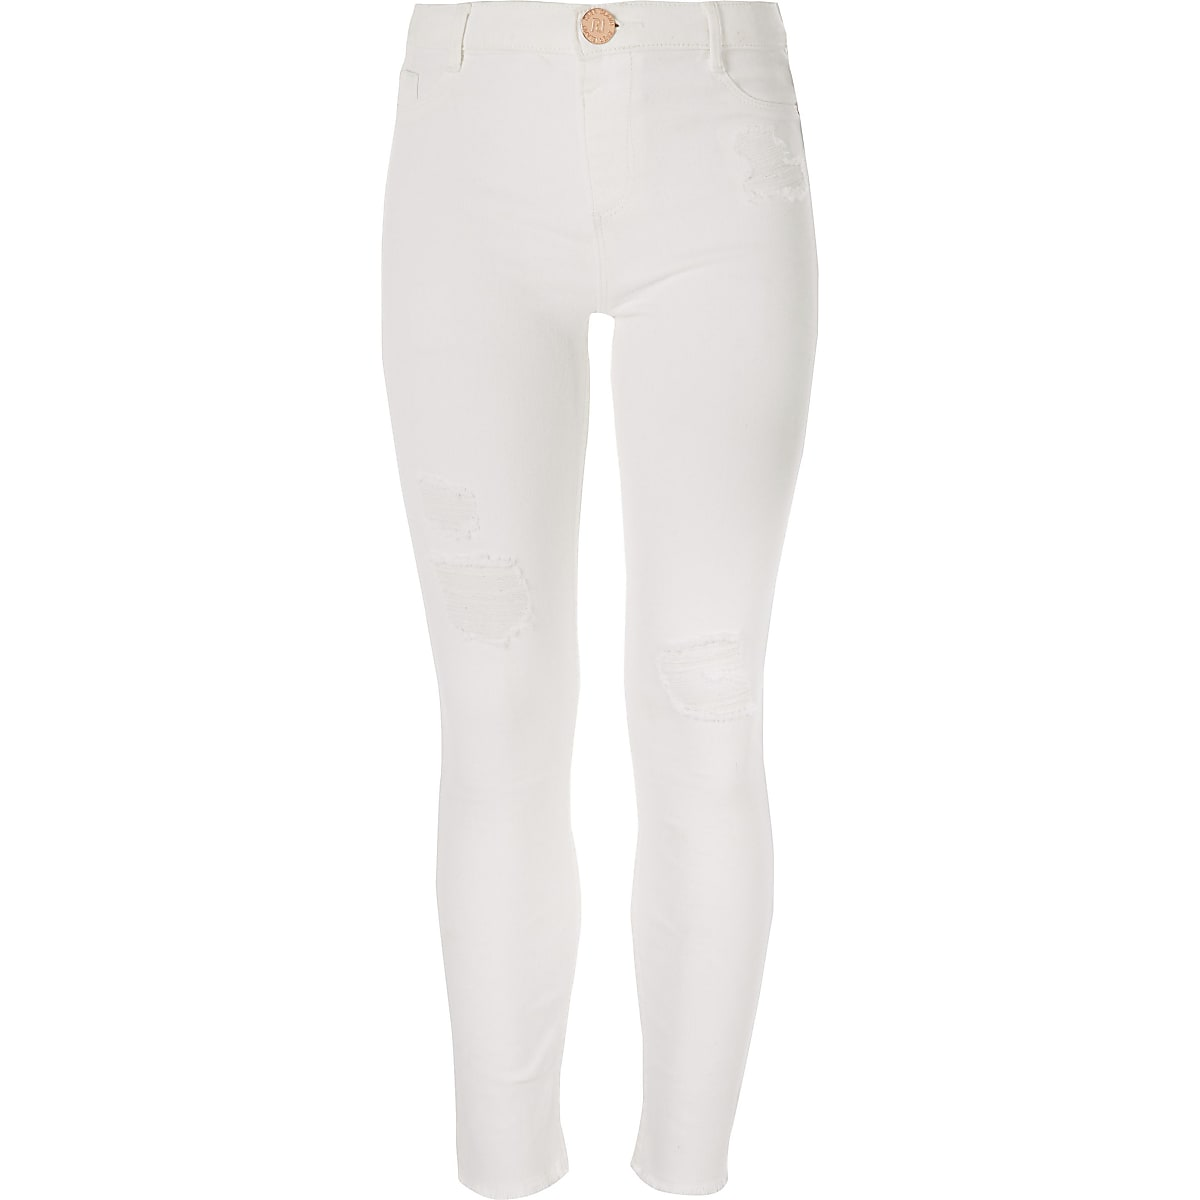 Girls white Molly mid rise jegging